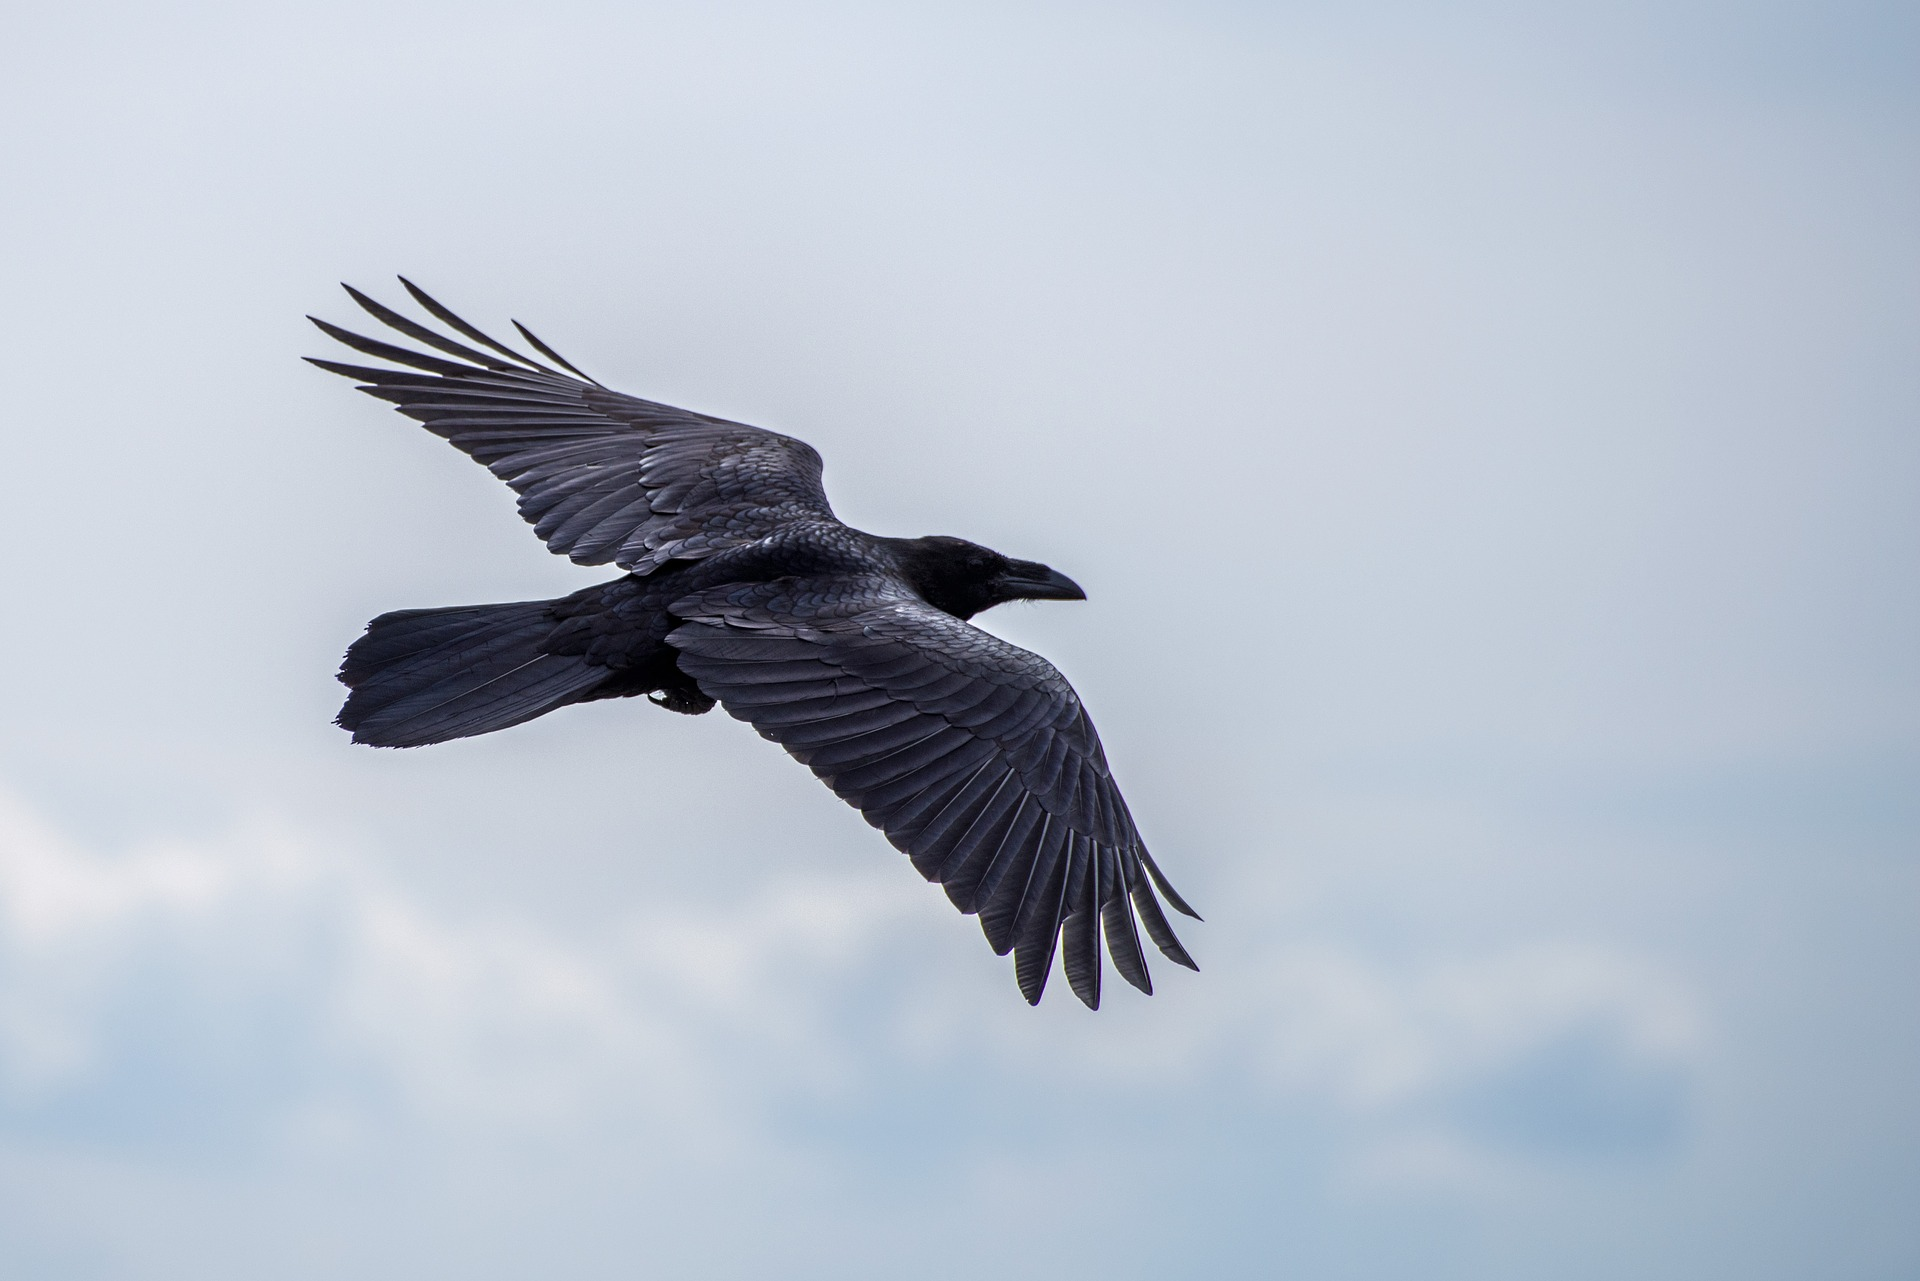 The raven is huge compared to other corvids. Note the 'fingers' on the wings, the diamond-shaped tail and the long and heavy beak.